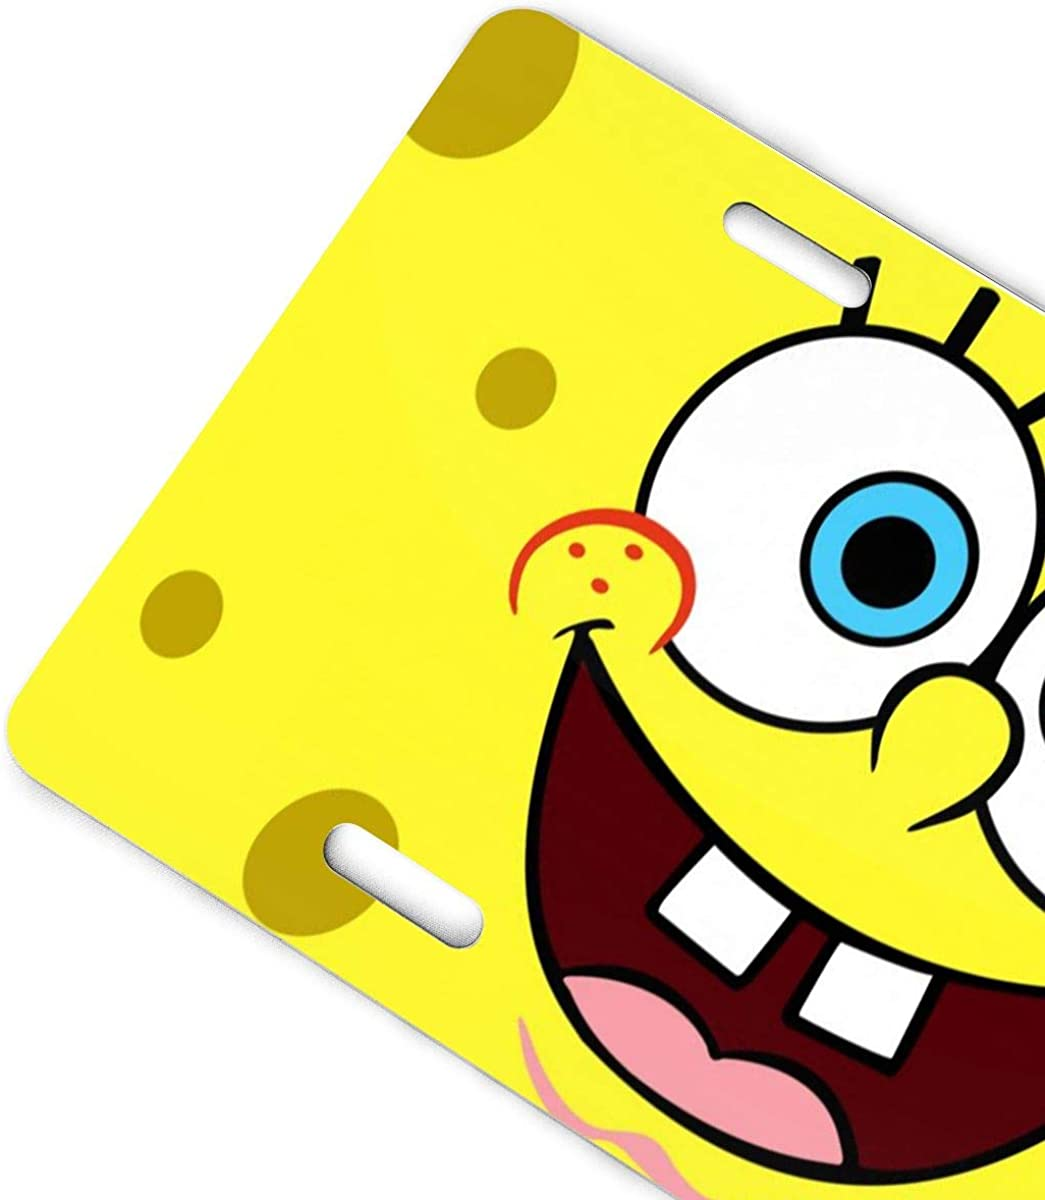 Meirdre Aluminum License Plates Patrick Star and Spongebob License Plate Tag Car Accessories 12 X 6 Inches